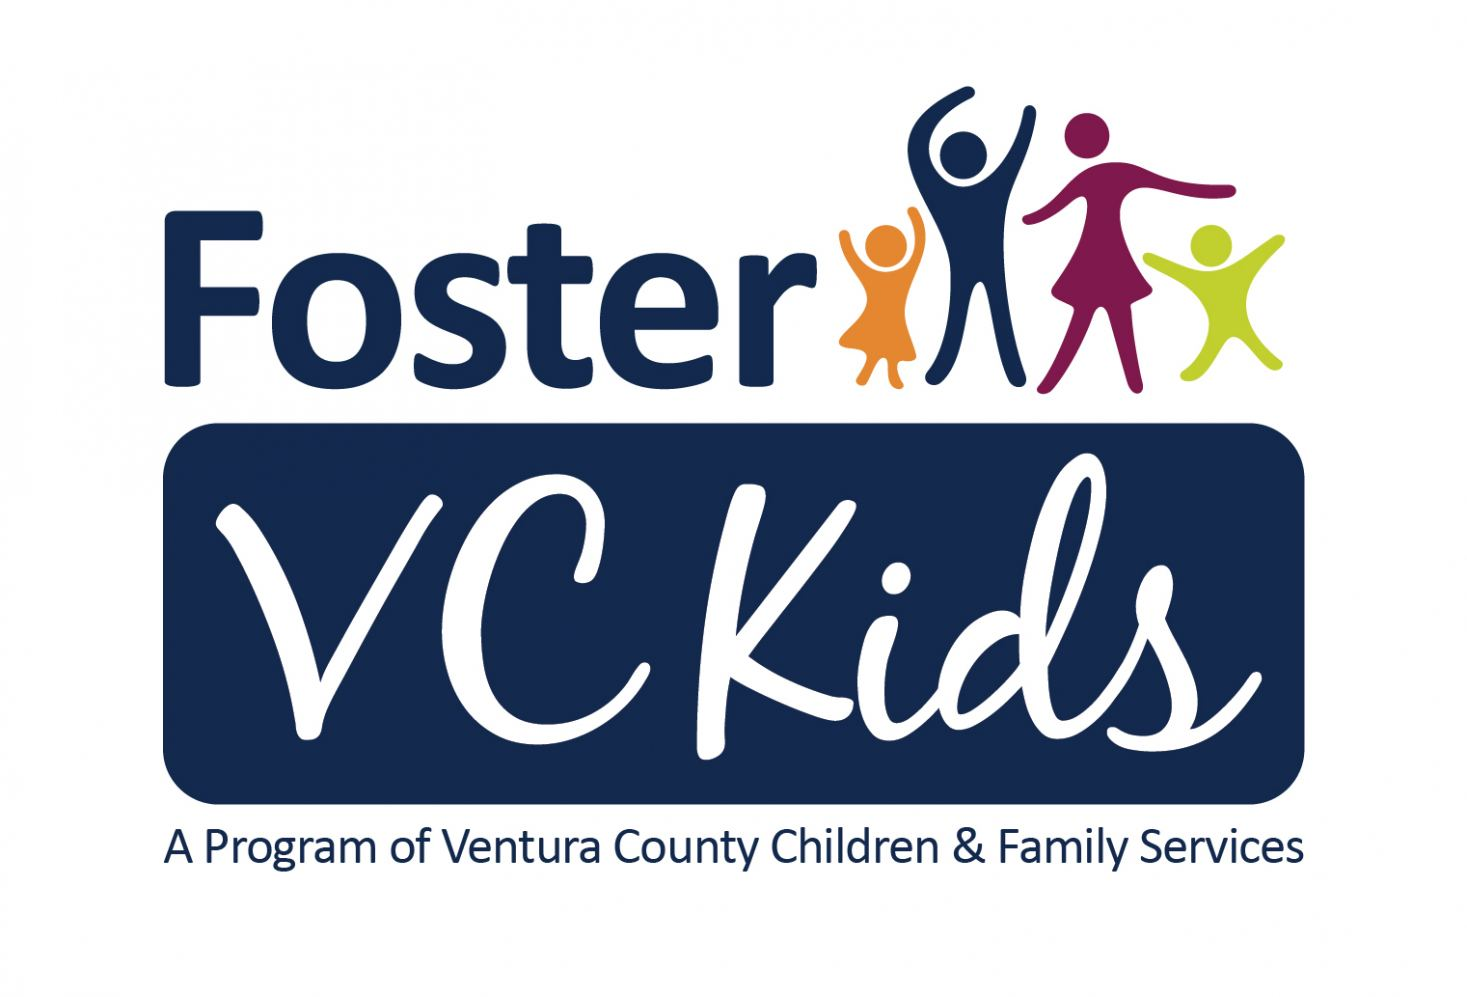 foster_vc_kids_logo_color_VCCSF